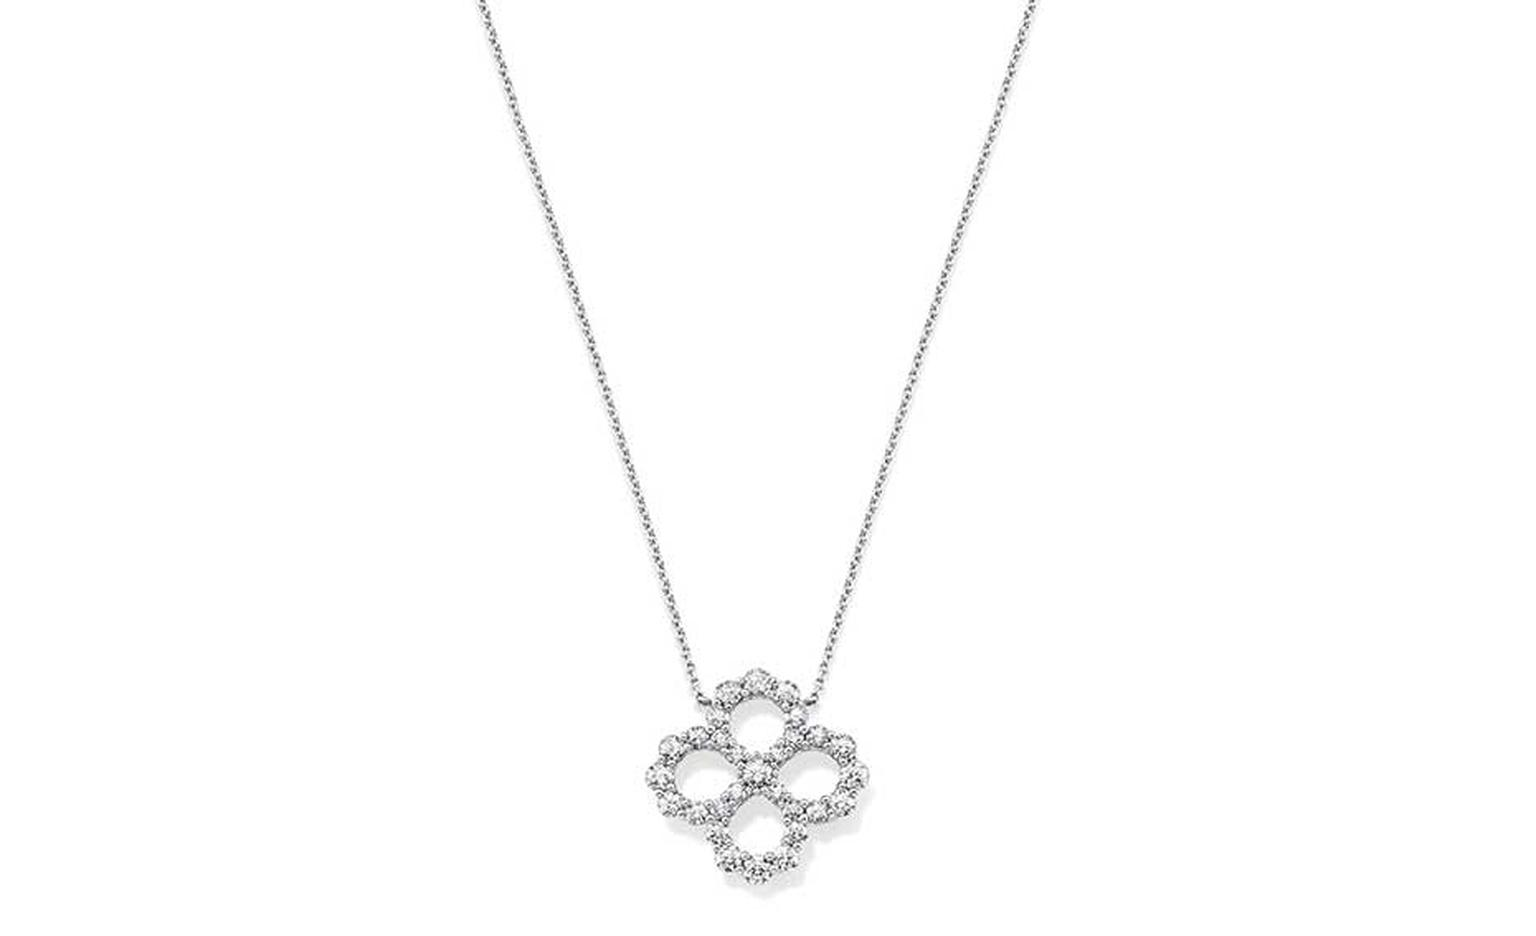 Harry Winston Diamond Loop collection necklace in platinum